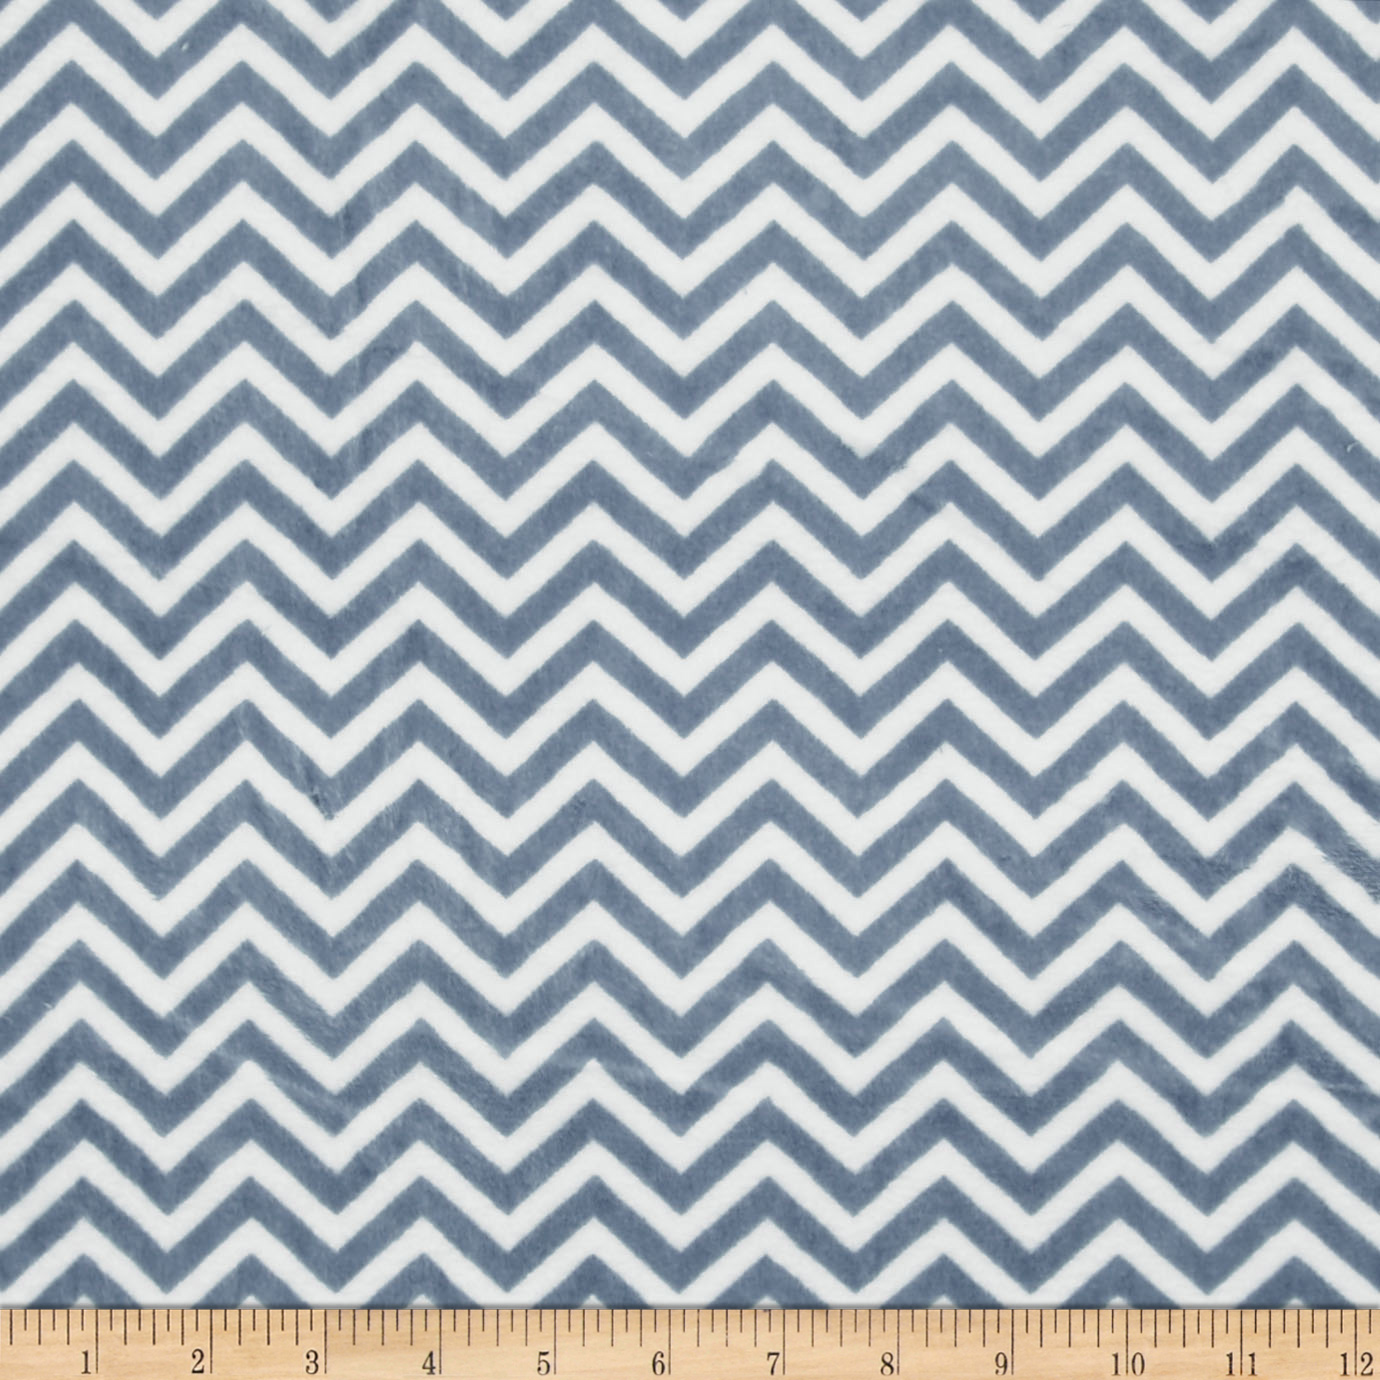 Minky Cuddle Mini Chevron Denim Blue/White Fabric